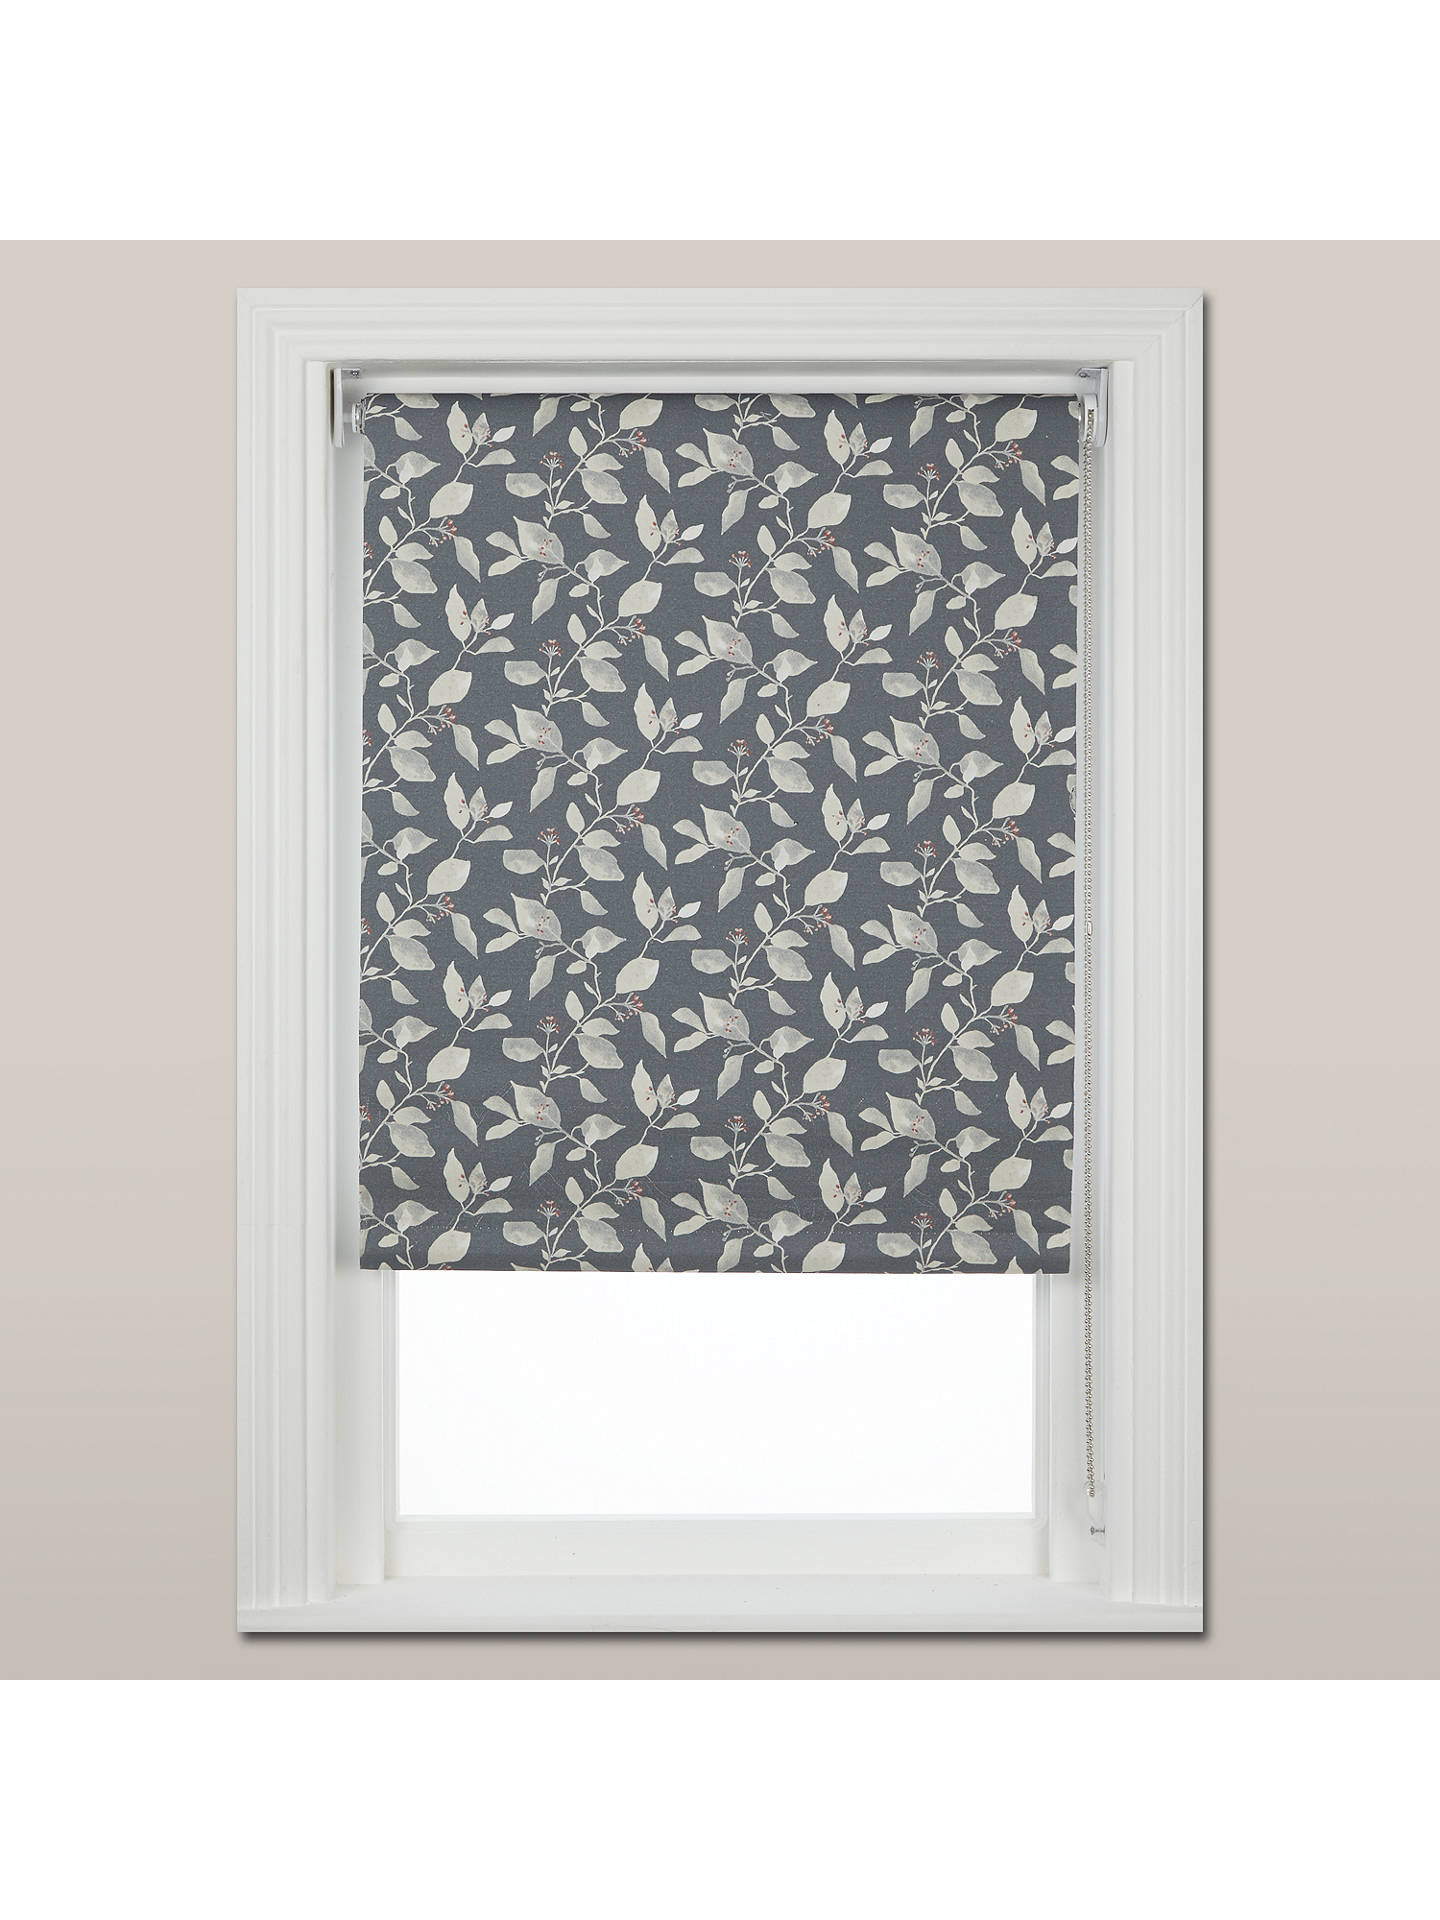 BuyJohn Lewis & Partners Country Viburnum Blackout Roller Blind, Thistle, W61cm Online at johnlewis.com